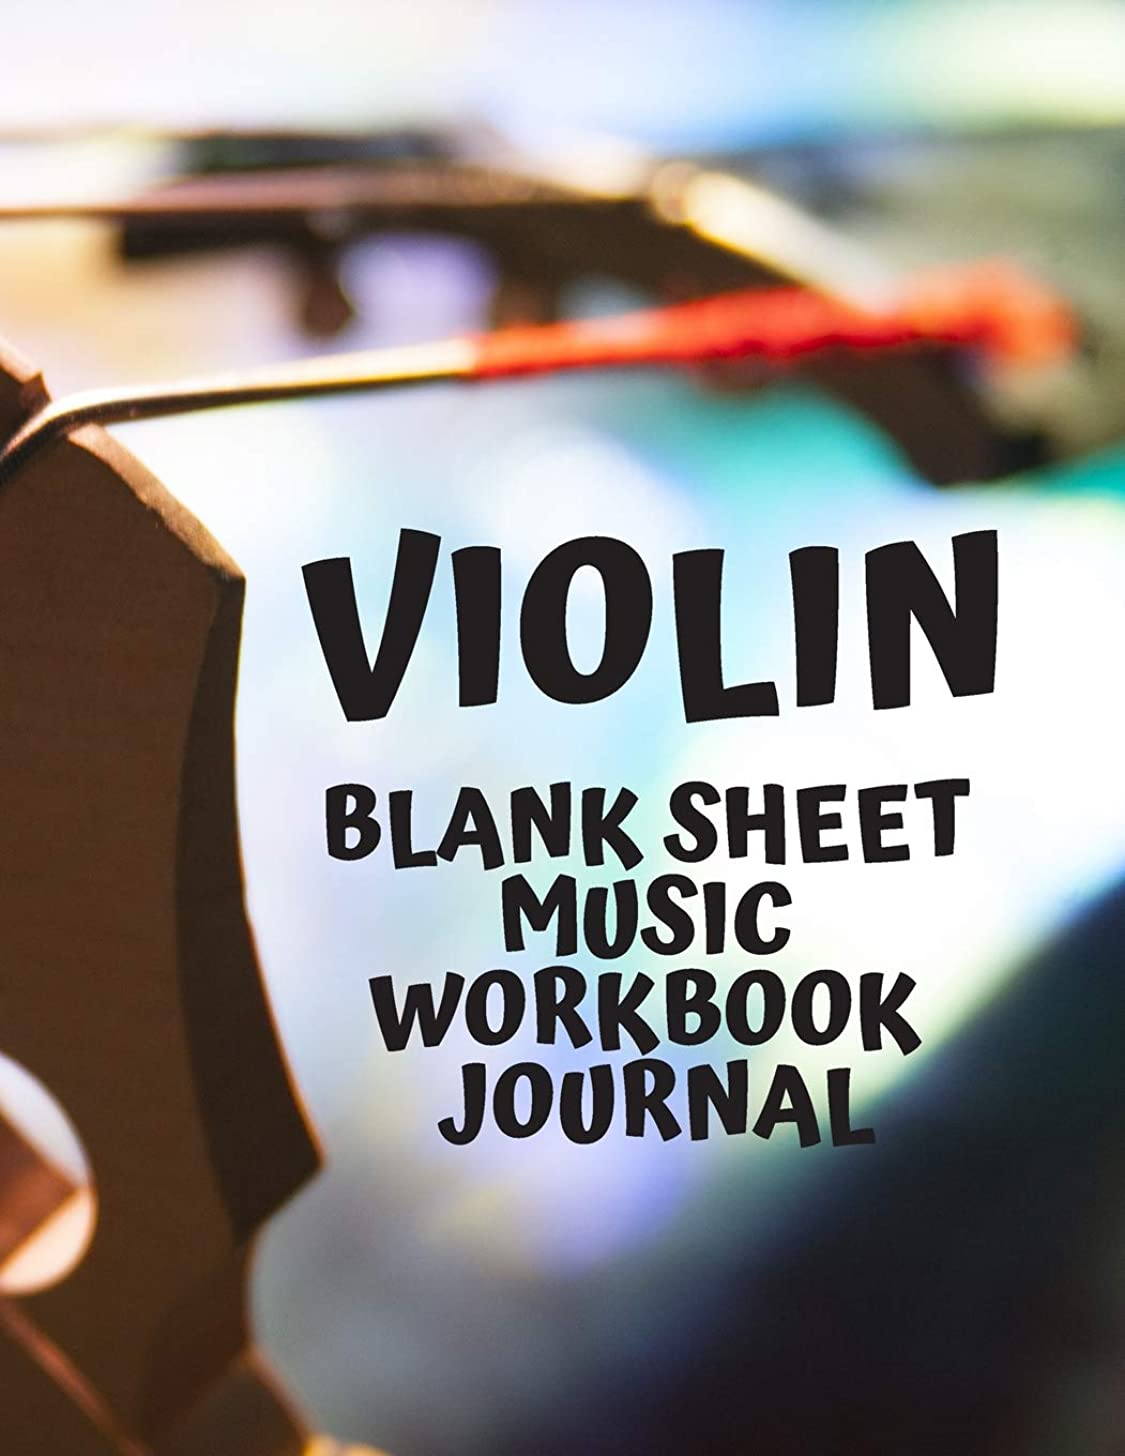 Violin Blank Sheet Music Workbook Journal: Great for Beginners Advanced Kids Students Musicians Composers, 8 Staves, Table of Contents with Page Numbers, White Paper 8.5x11 inches 109 Pages